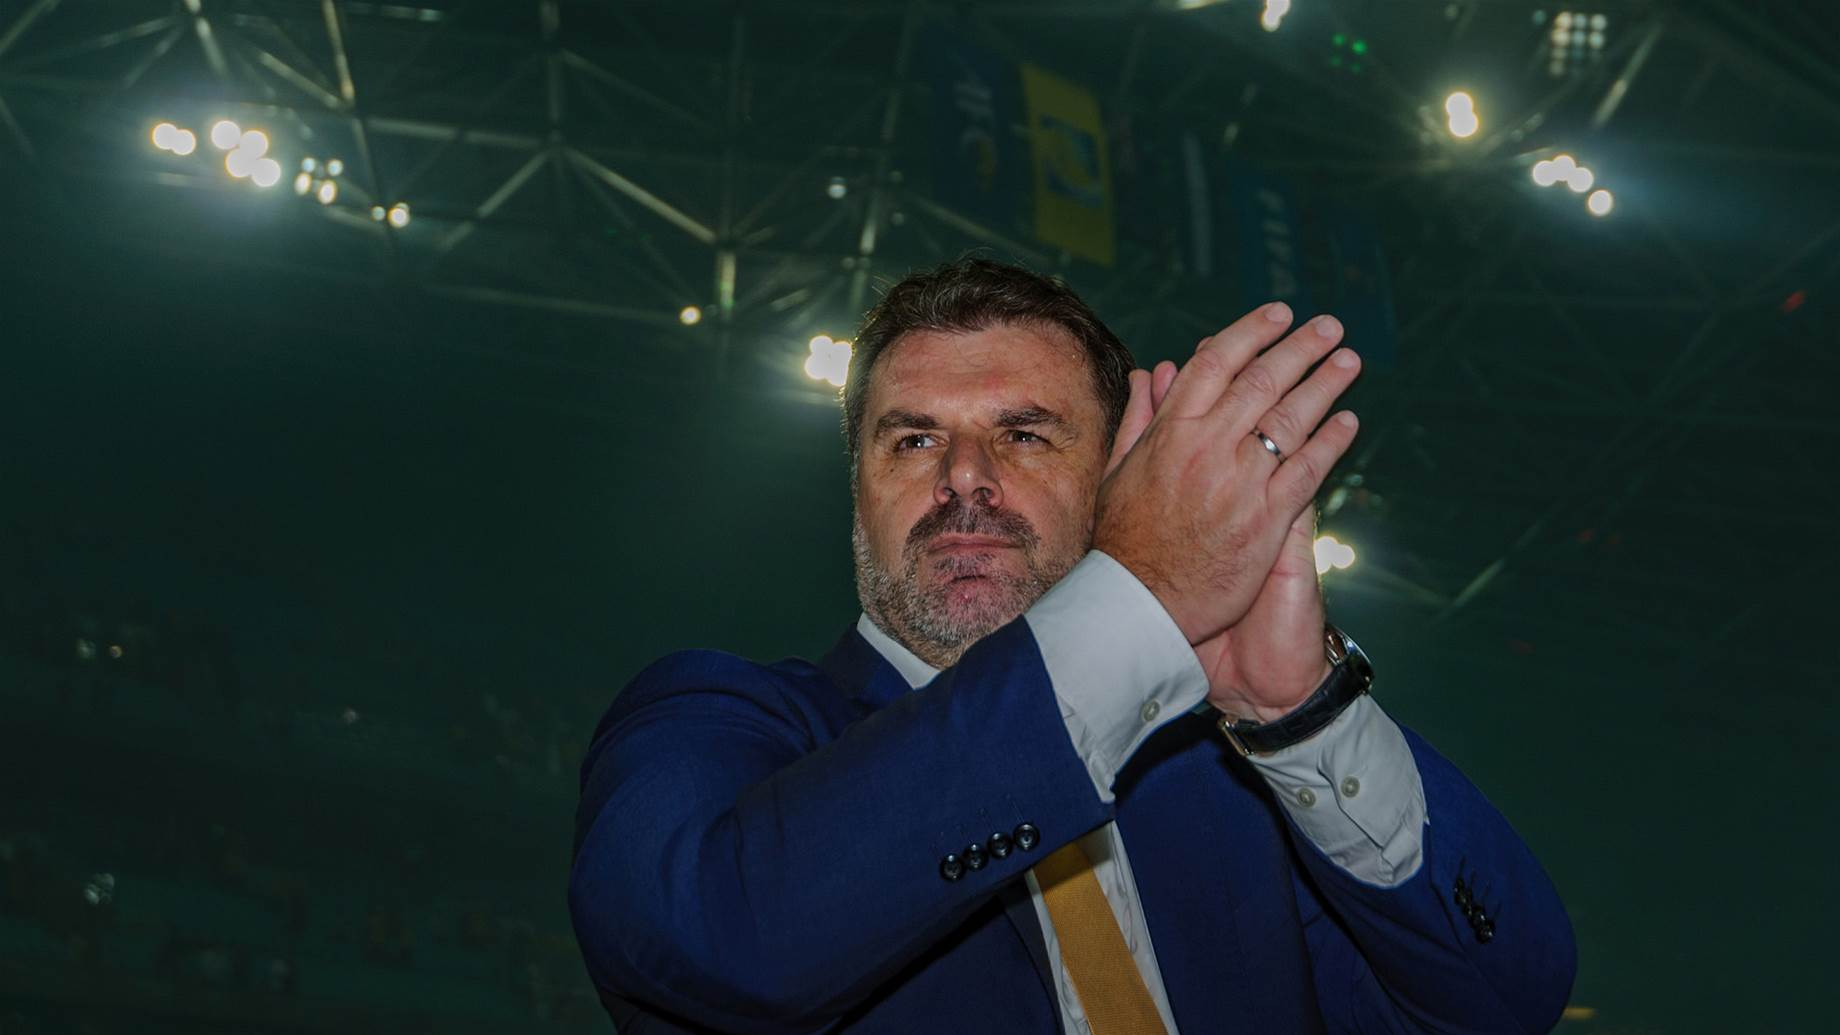 Farewell Ange - we miss him already...